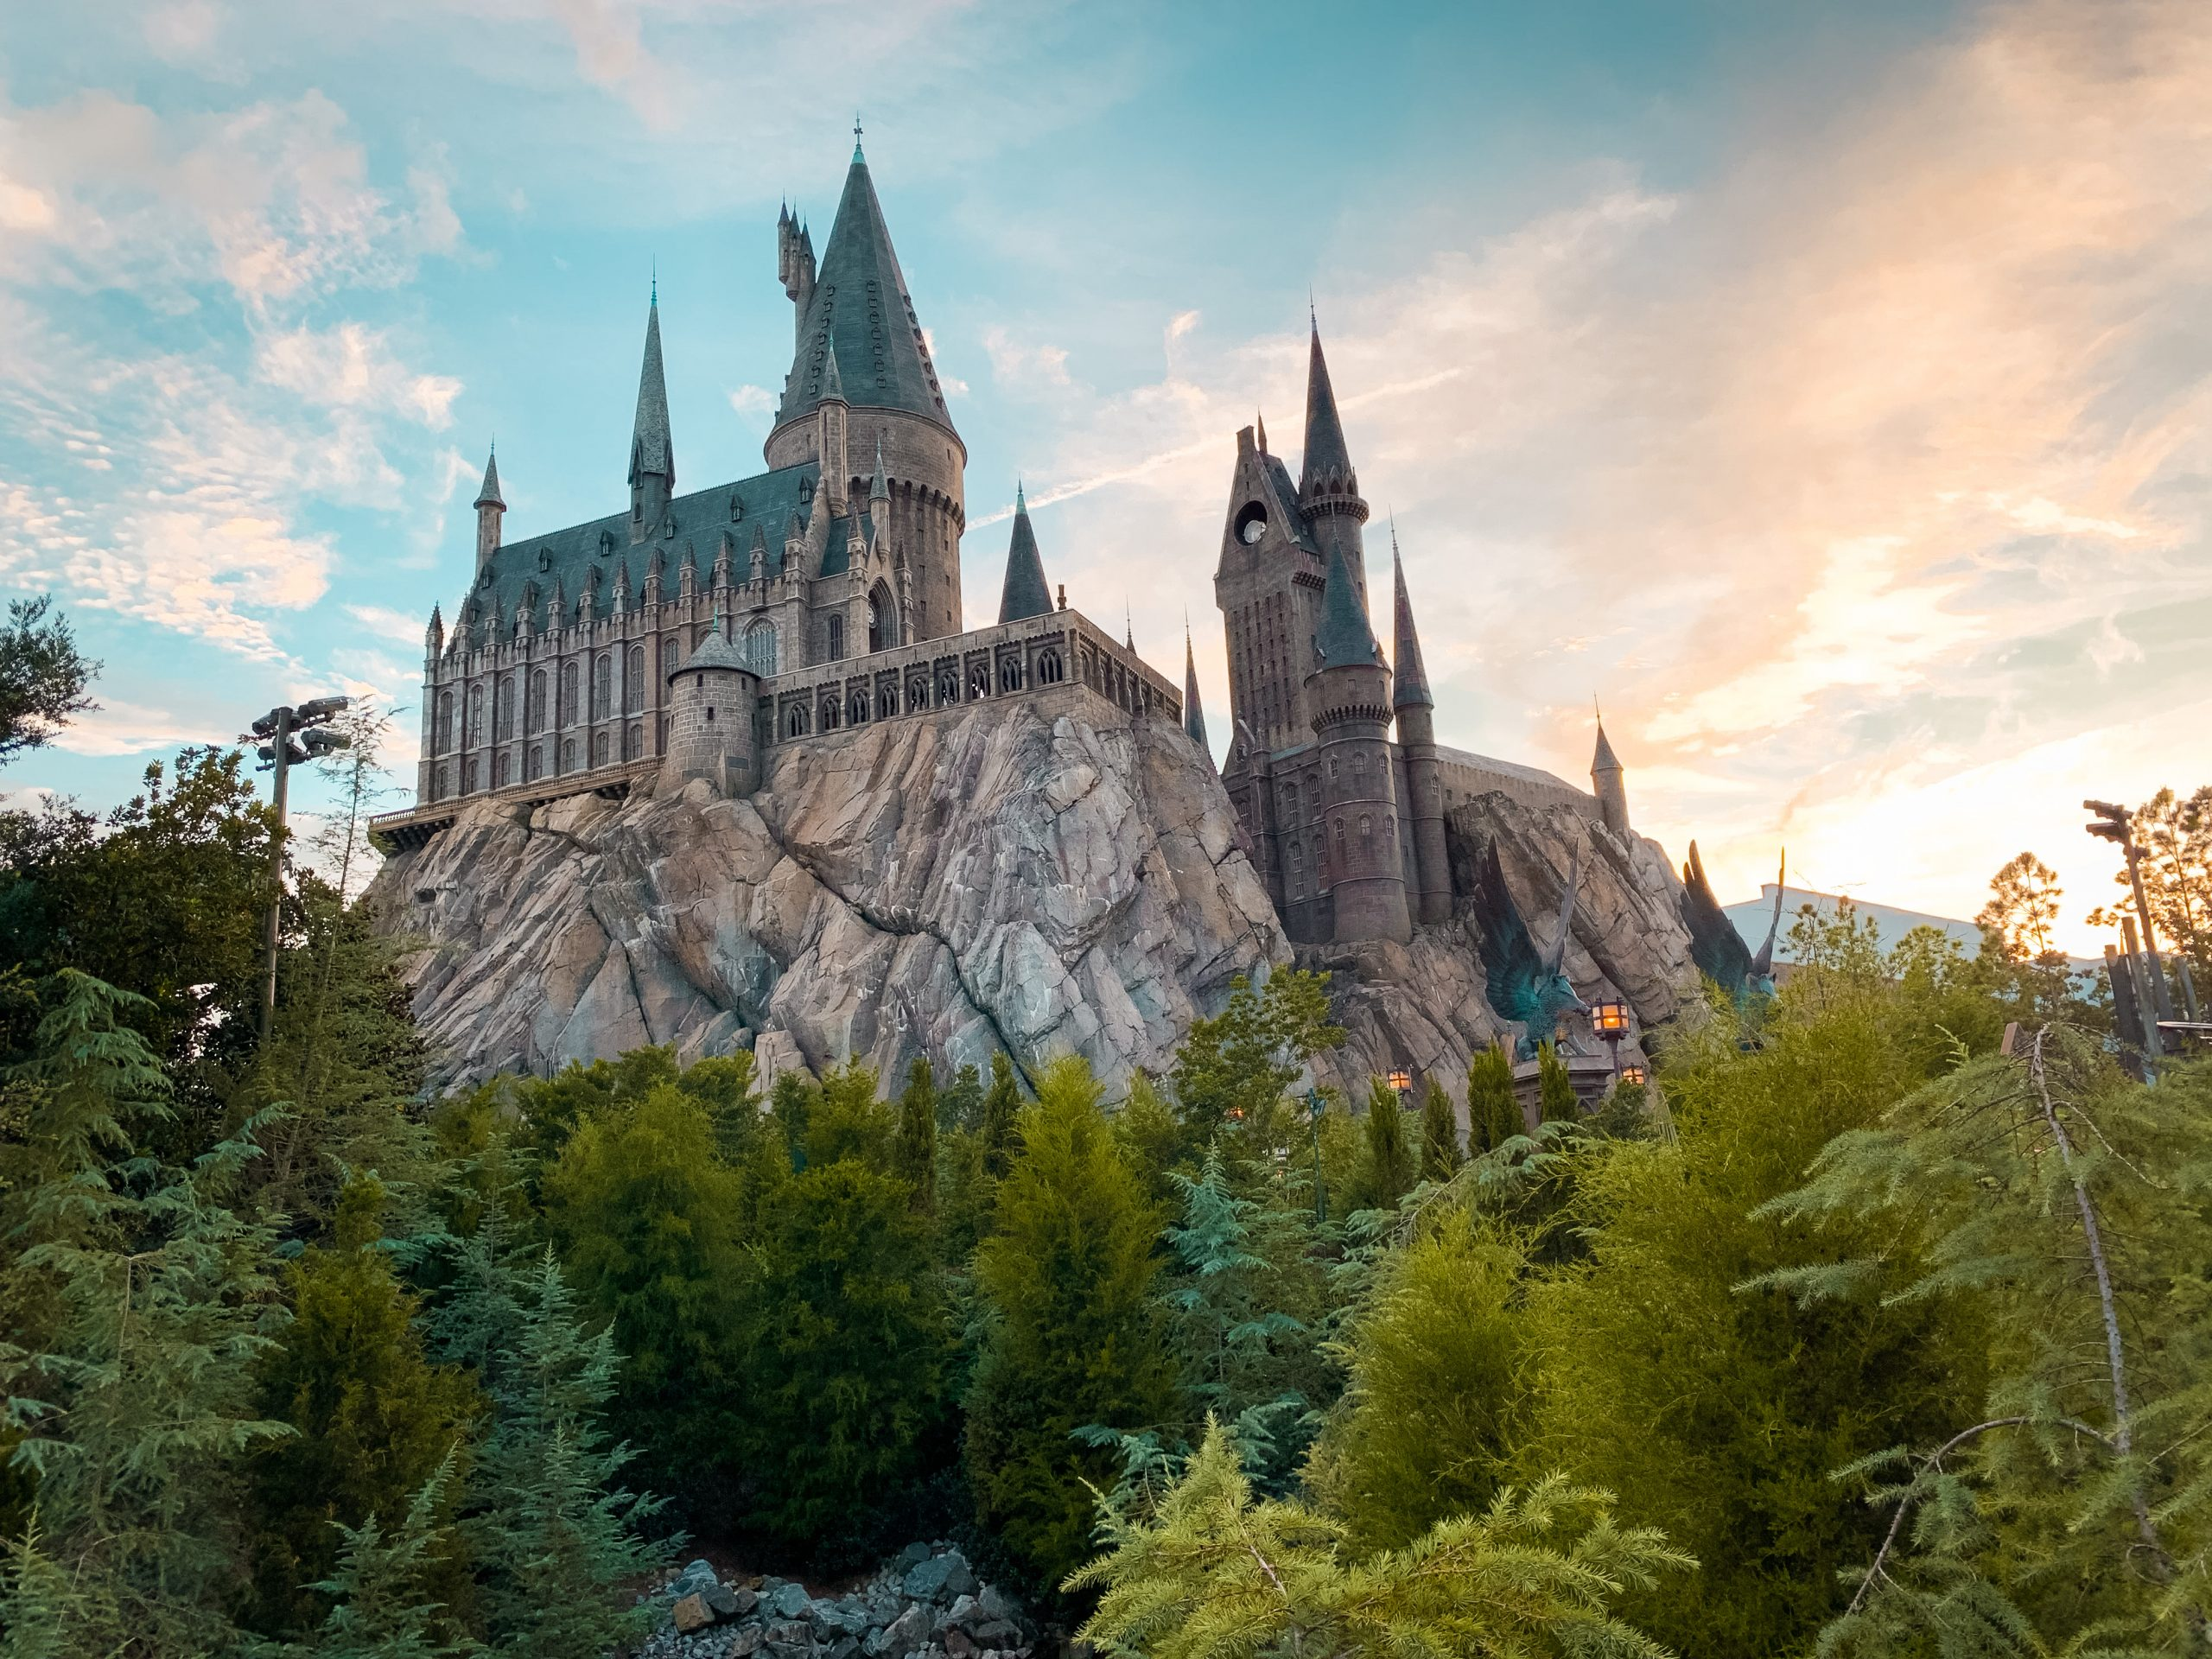 Hogwarts at sunset at the Wizarding World of Harry Potter in Universal Studios Orlando